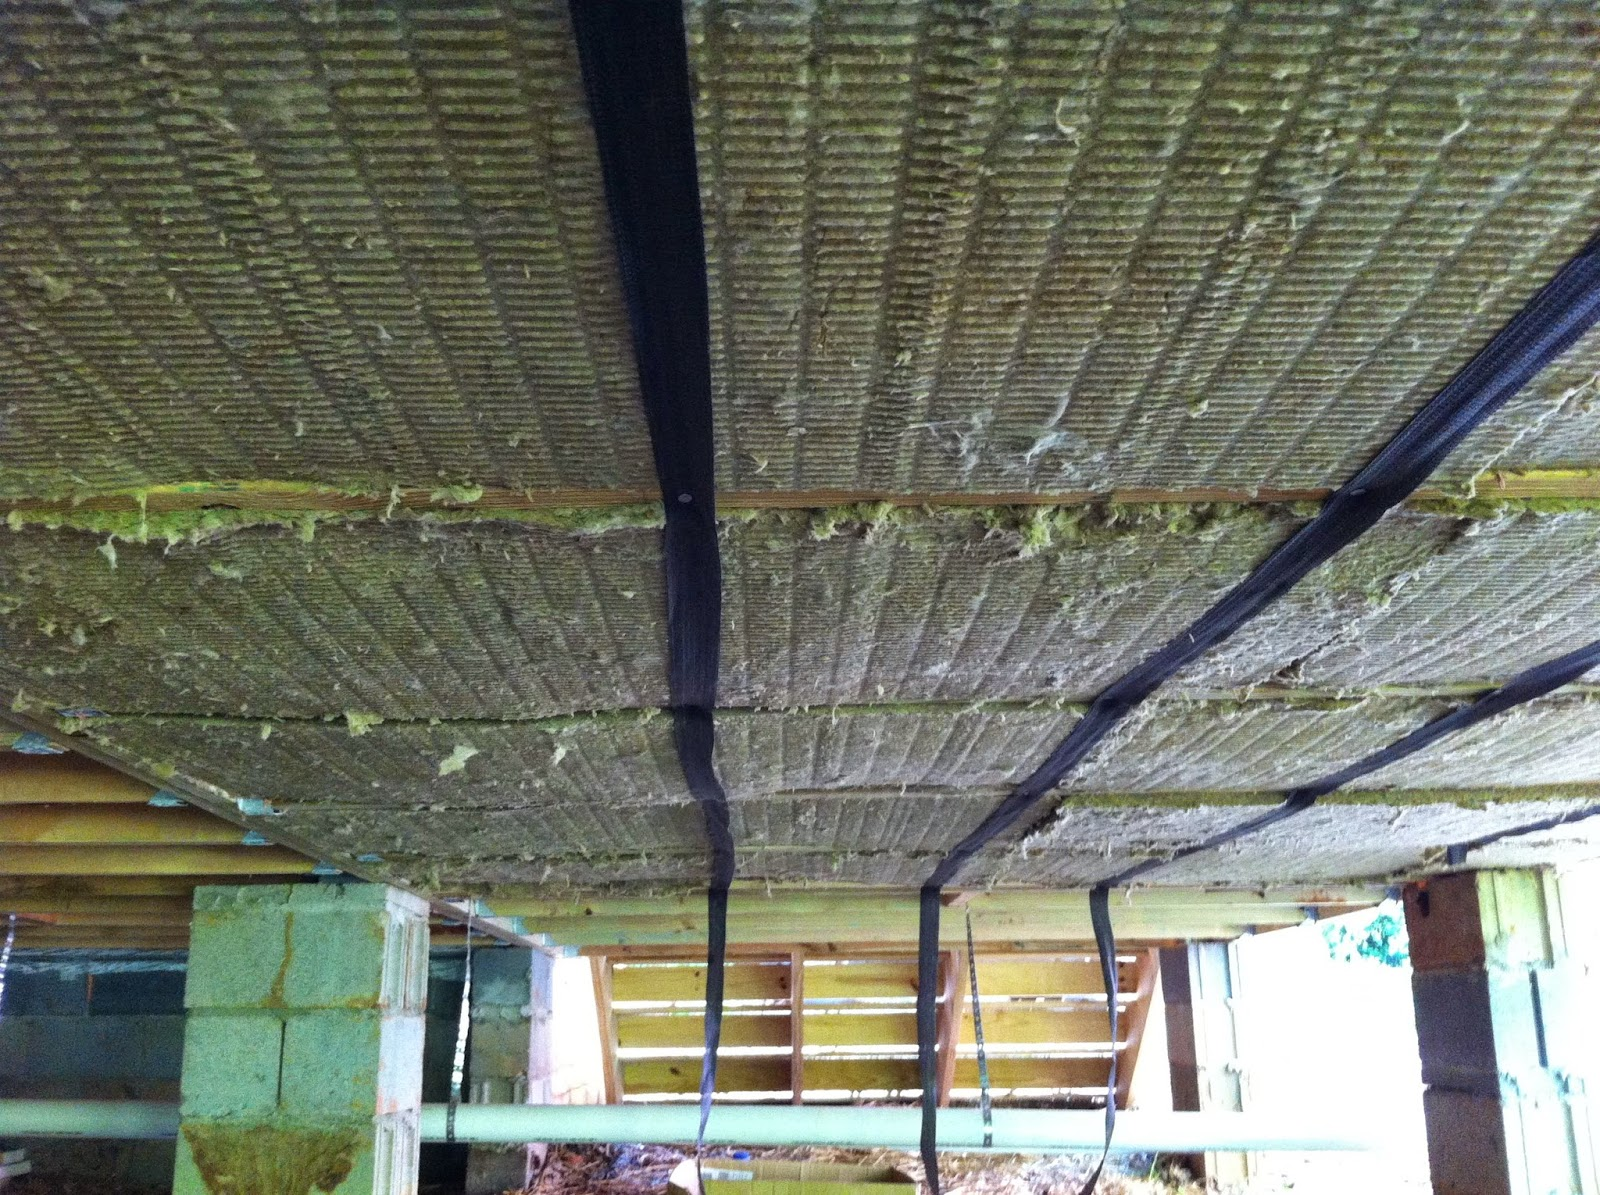 Green In Greenville Crawlspace Insulation. Inside Out Patio Furniture Ontario. Red Patio Tablecloth. Used Patio Furniture Palm Desert. Craigslist Patio Furniture Ma. Wrought Iron Patio Furniture Dallas. Patio Furniture For Sale Guelph. Patio Furniture In Long Island. Outdoor Furniture Side Table